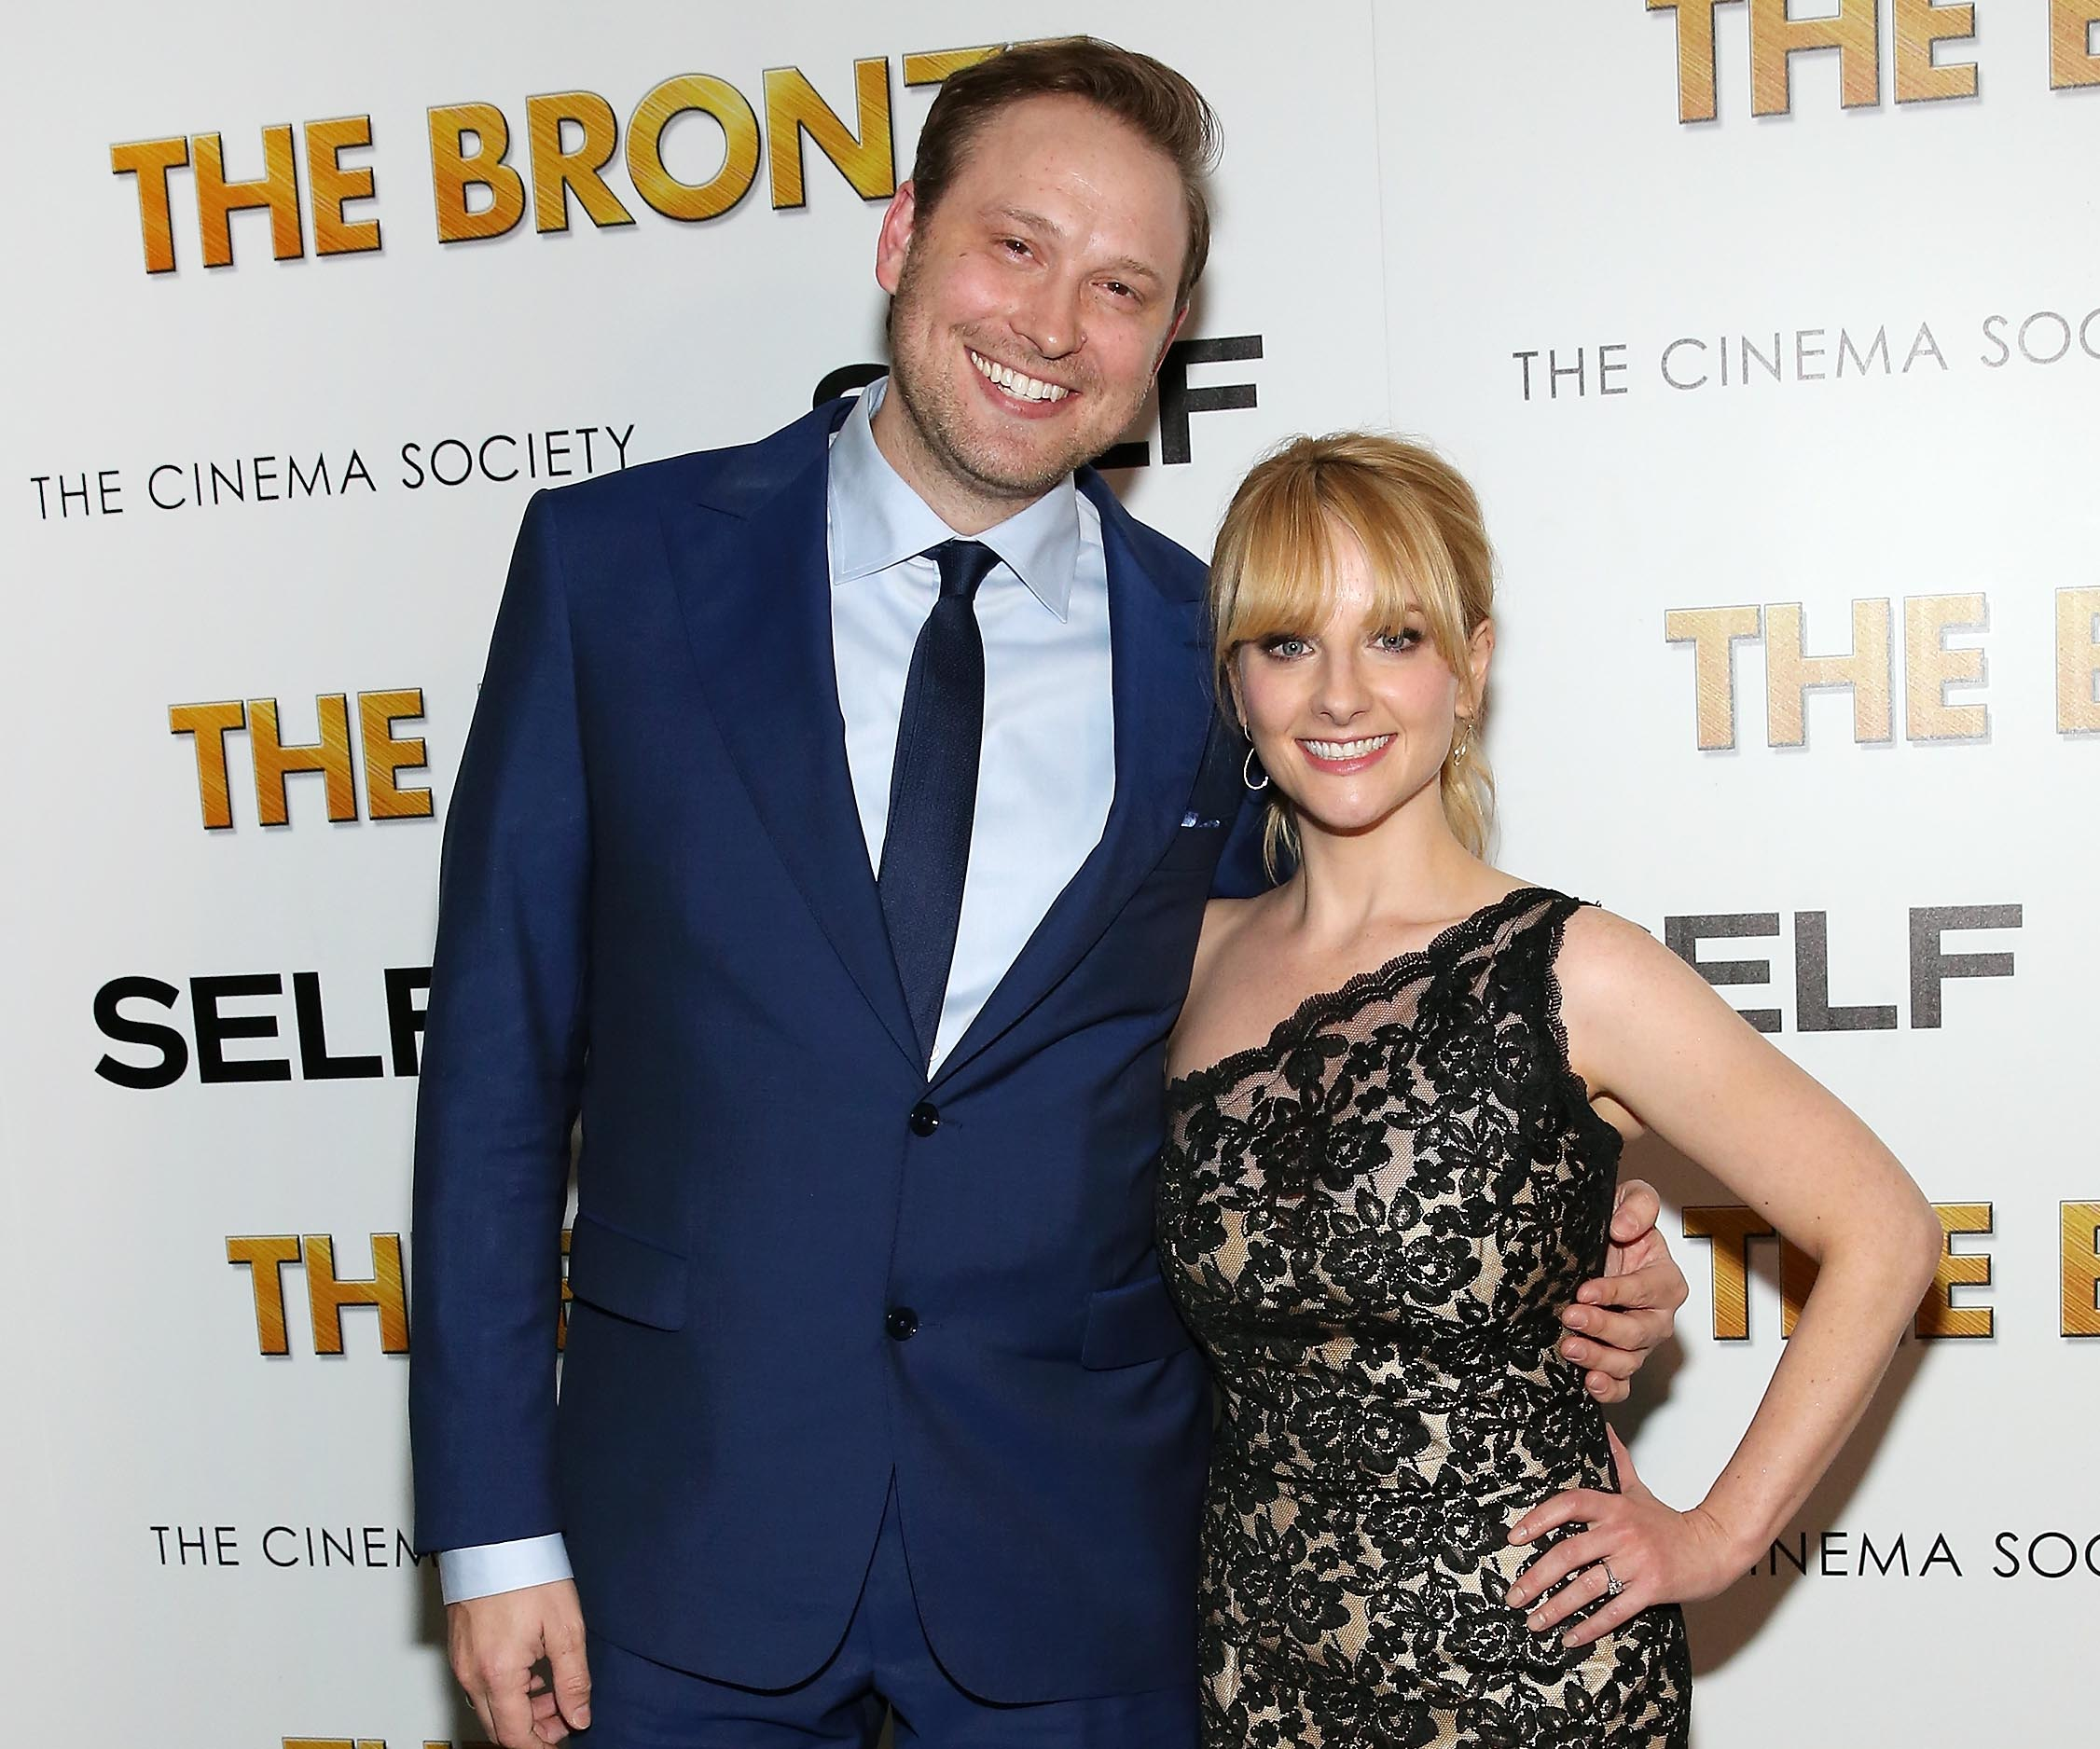 Melissa Rauch, husband Winston welcome daughter Sadie Rauch!